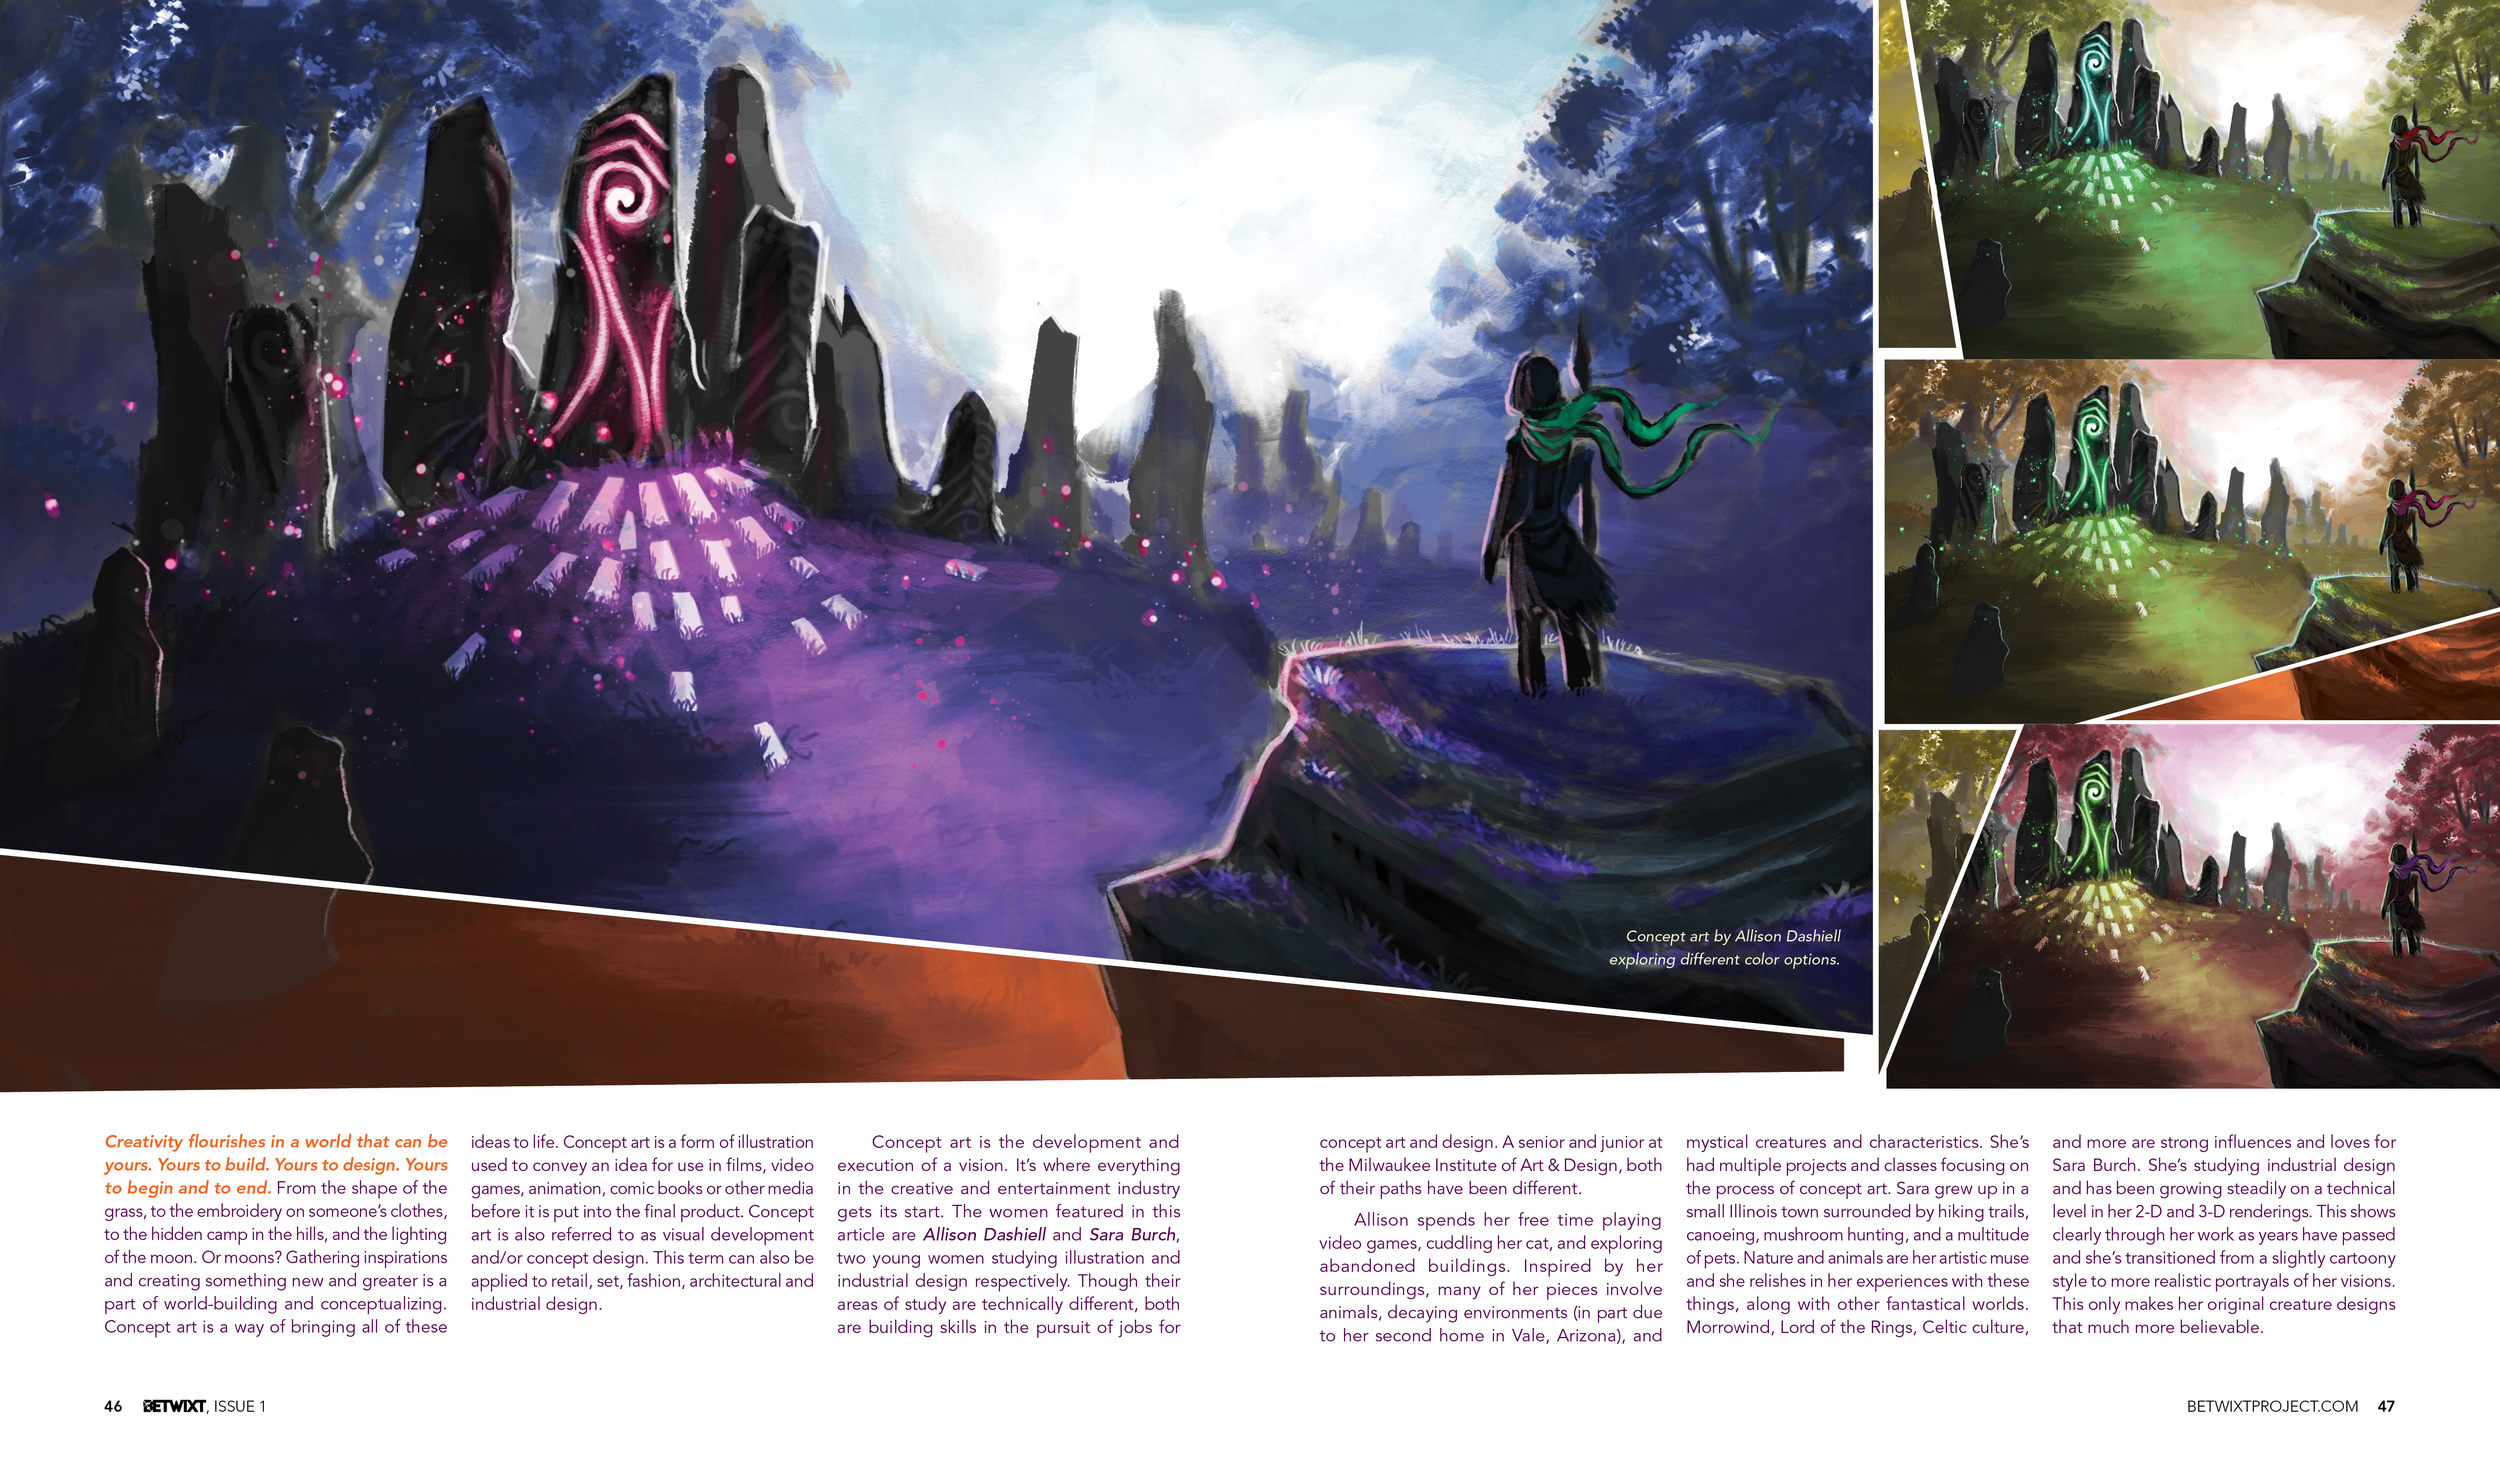 betwixt spreads for the interewebs24.jpg